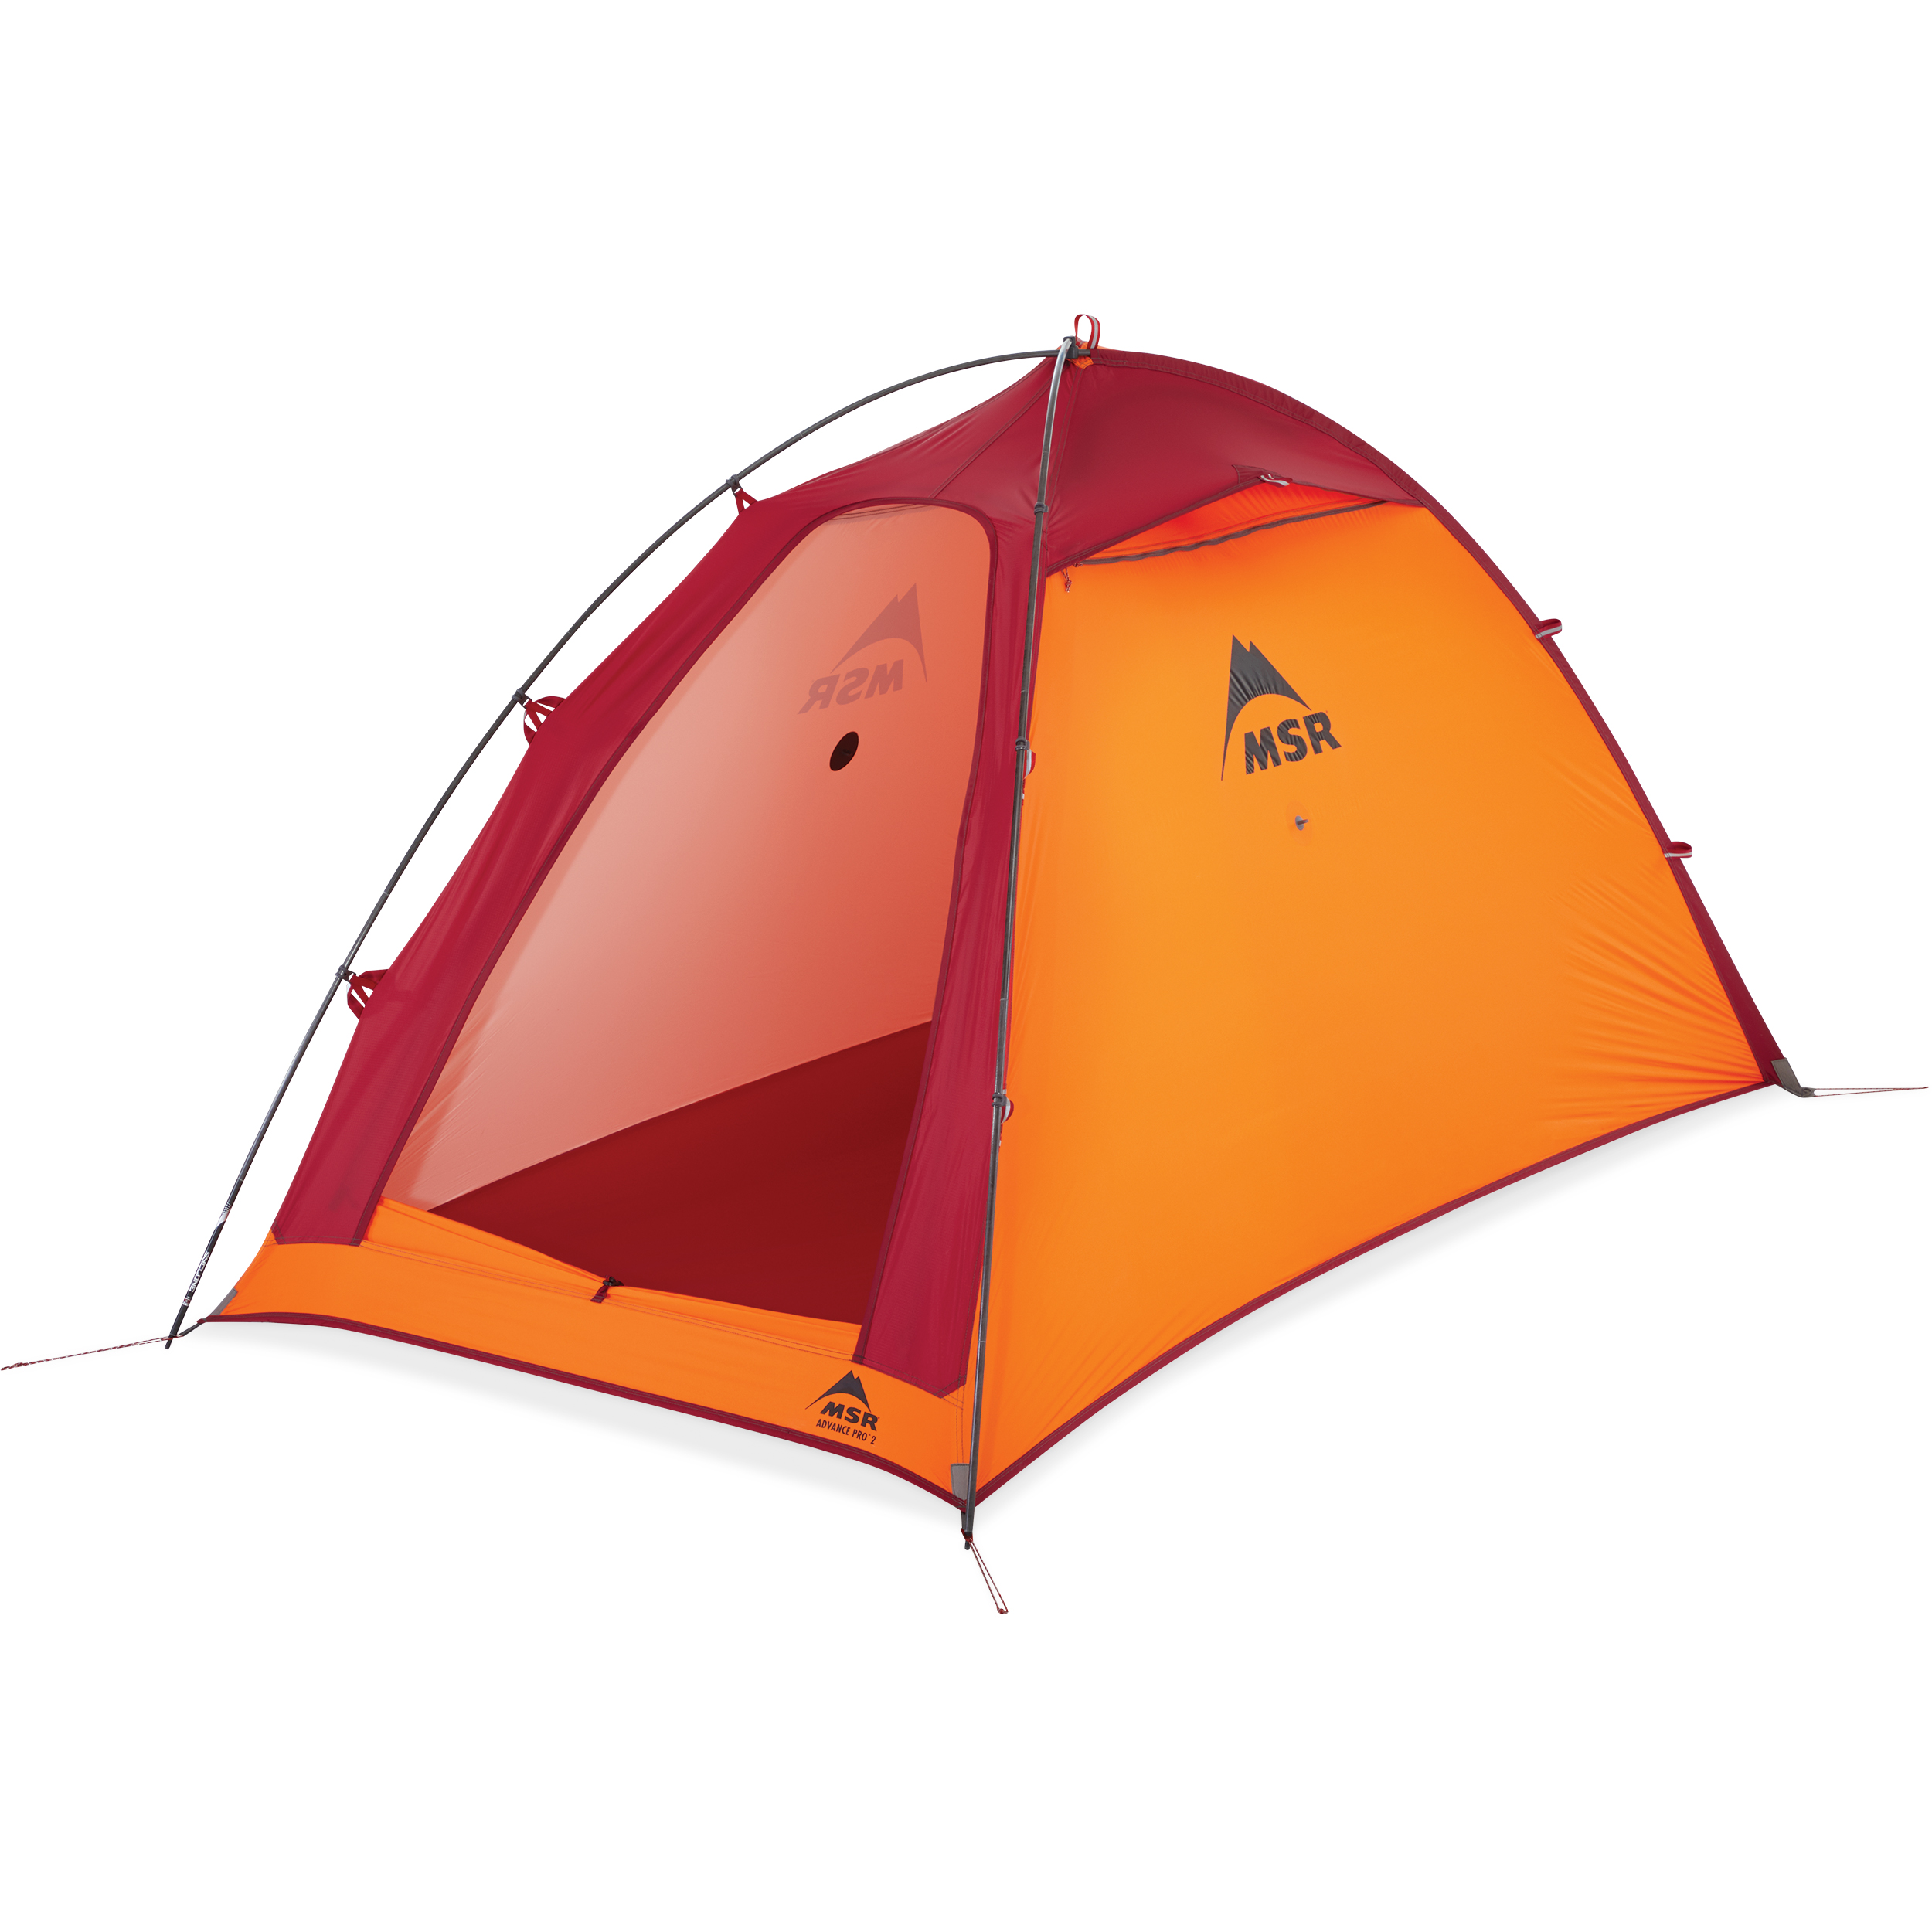 14 Best Ultralight Backpacking Tents